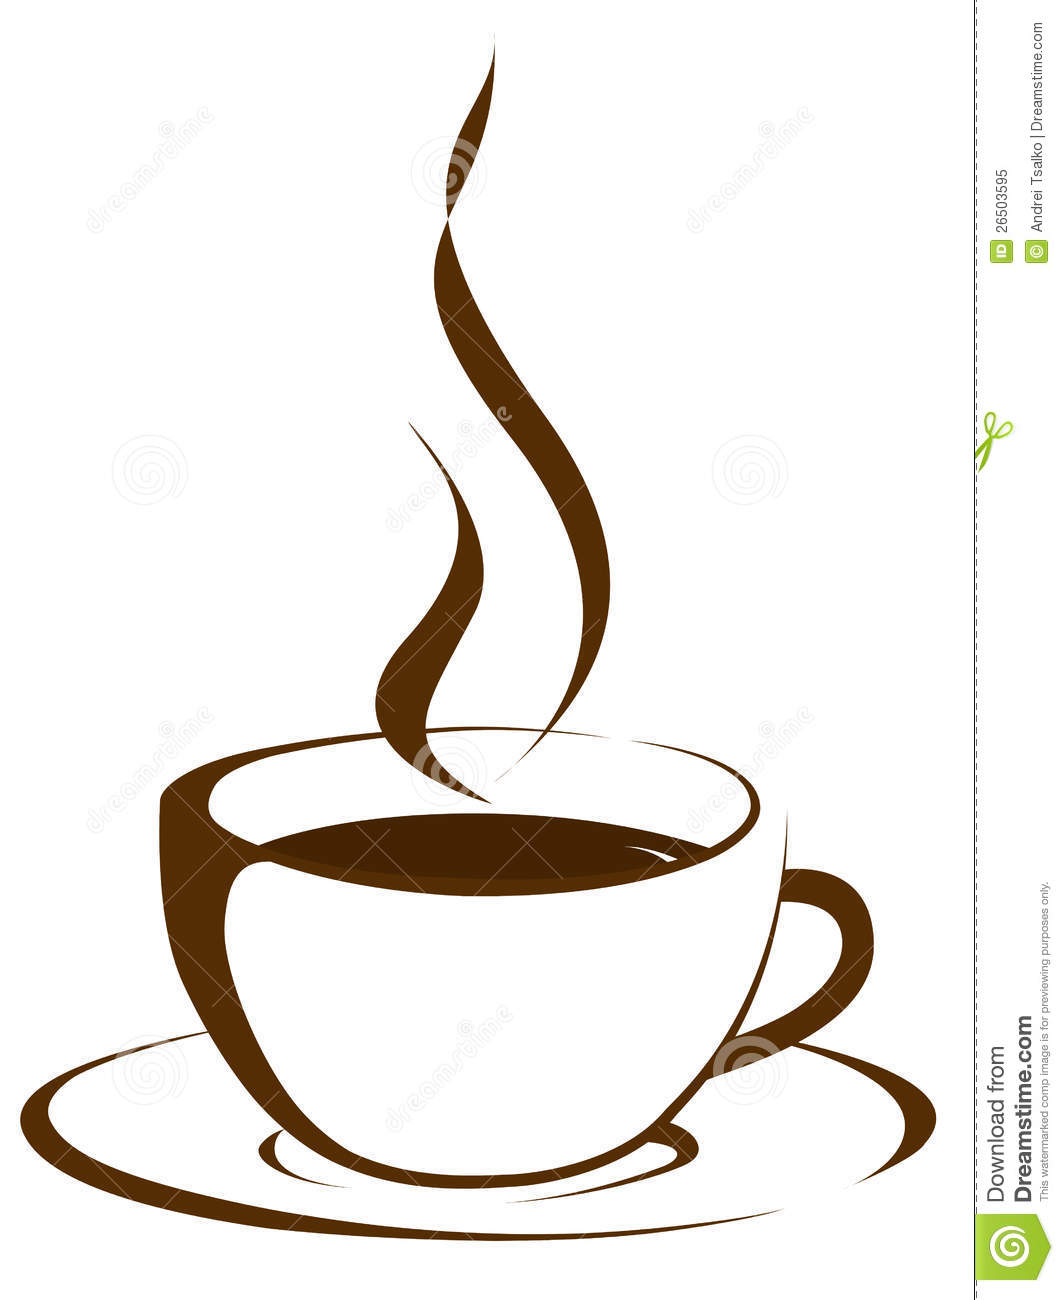 Coffee cup images clipart clip art freeuse library Steaming Coffee Cup Clipart | Clipart Panda - Free Clipart ... clip art freeuse library